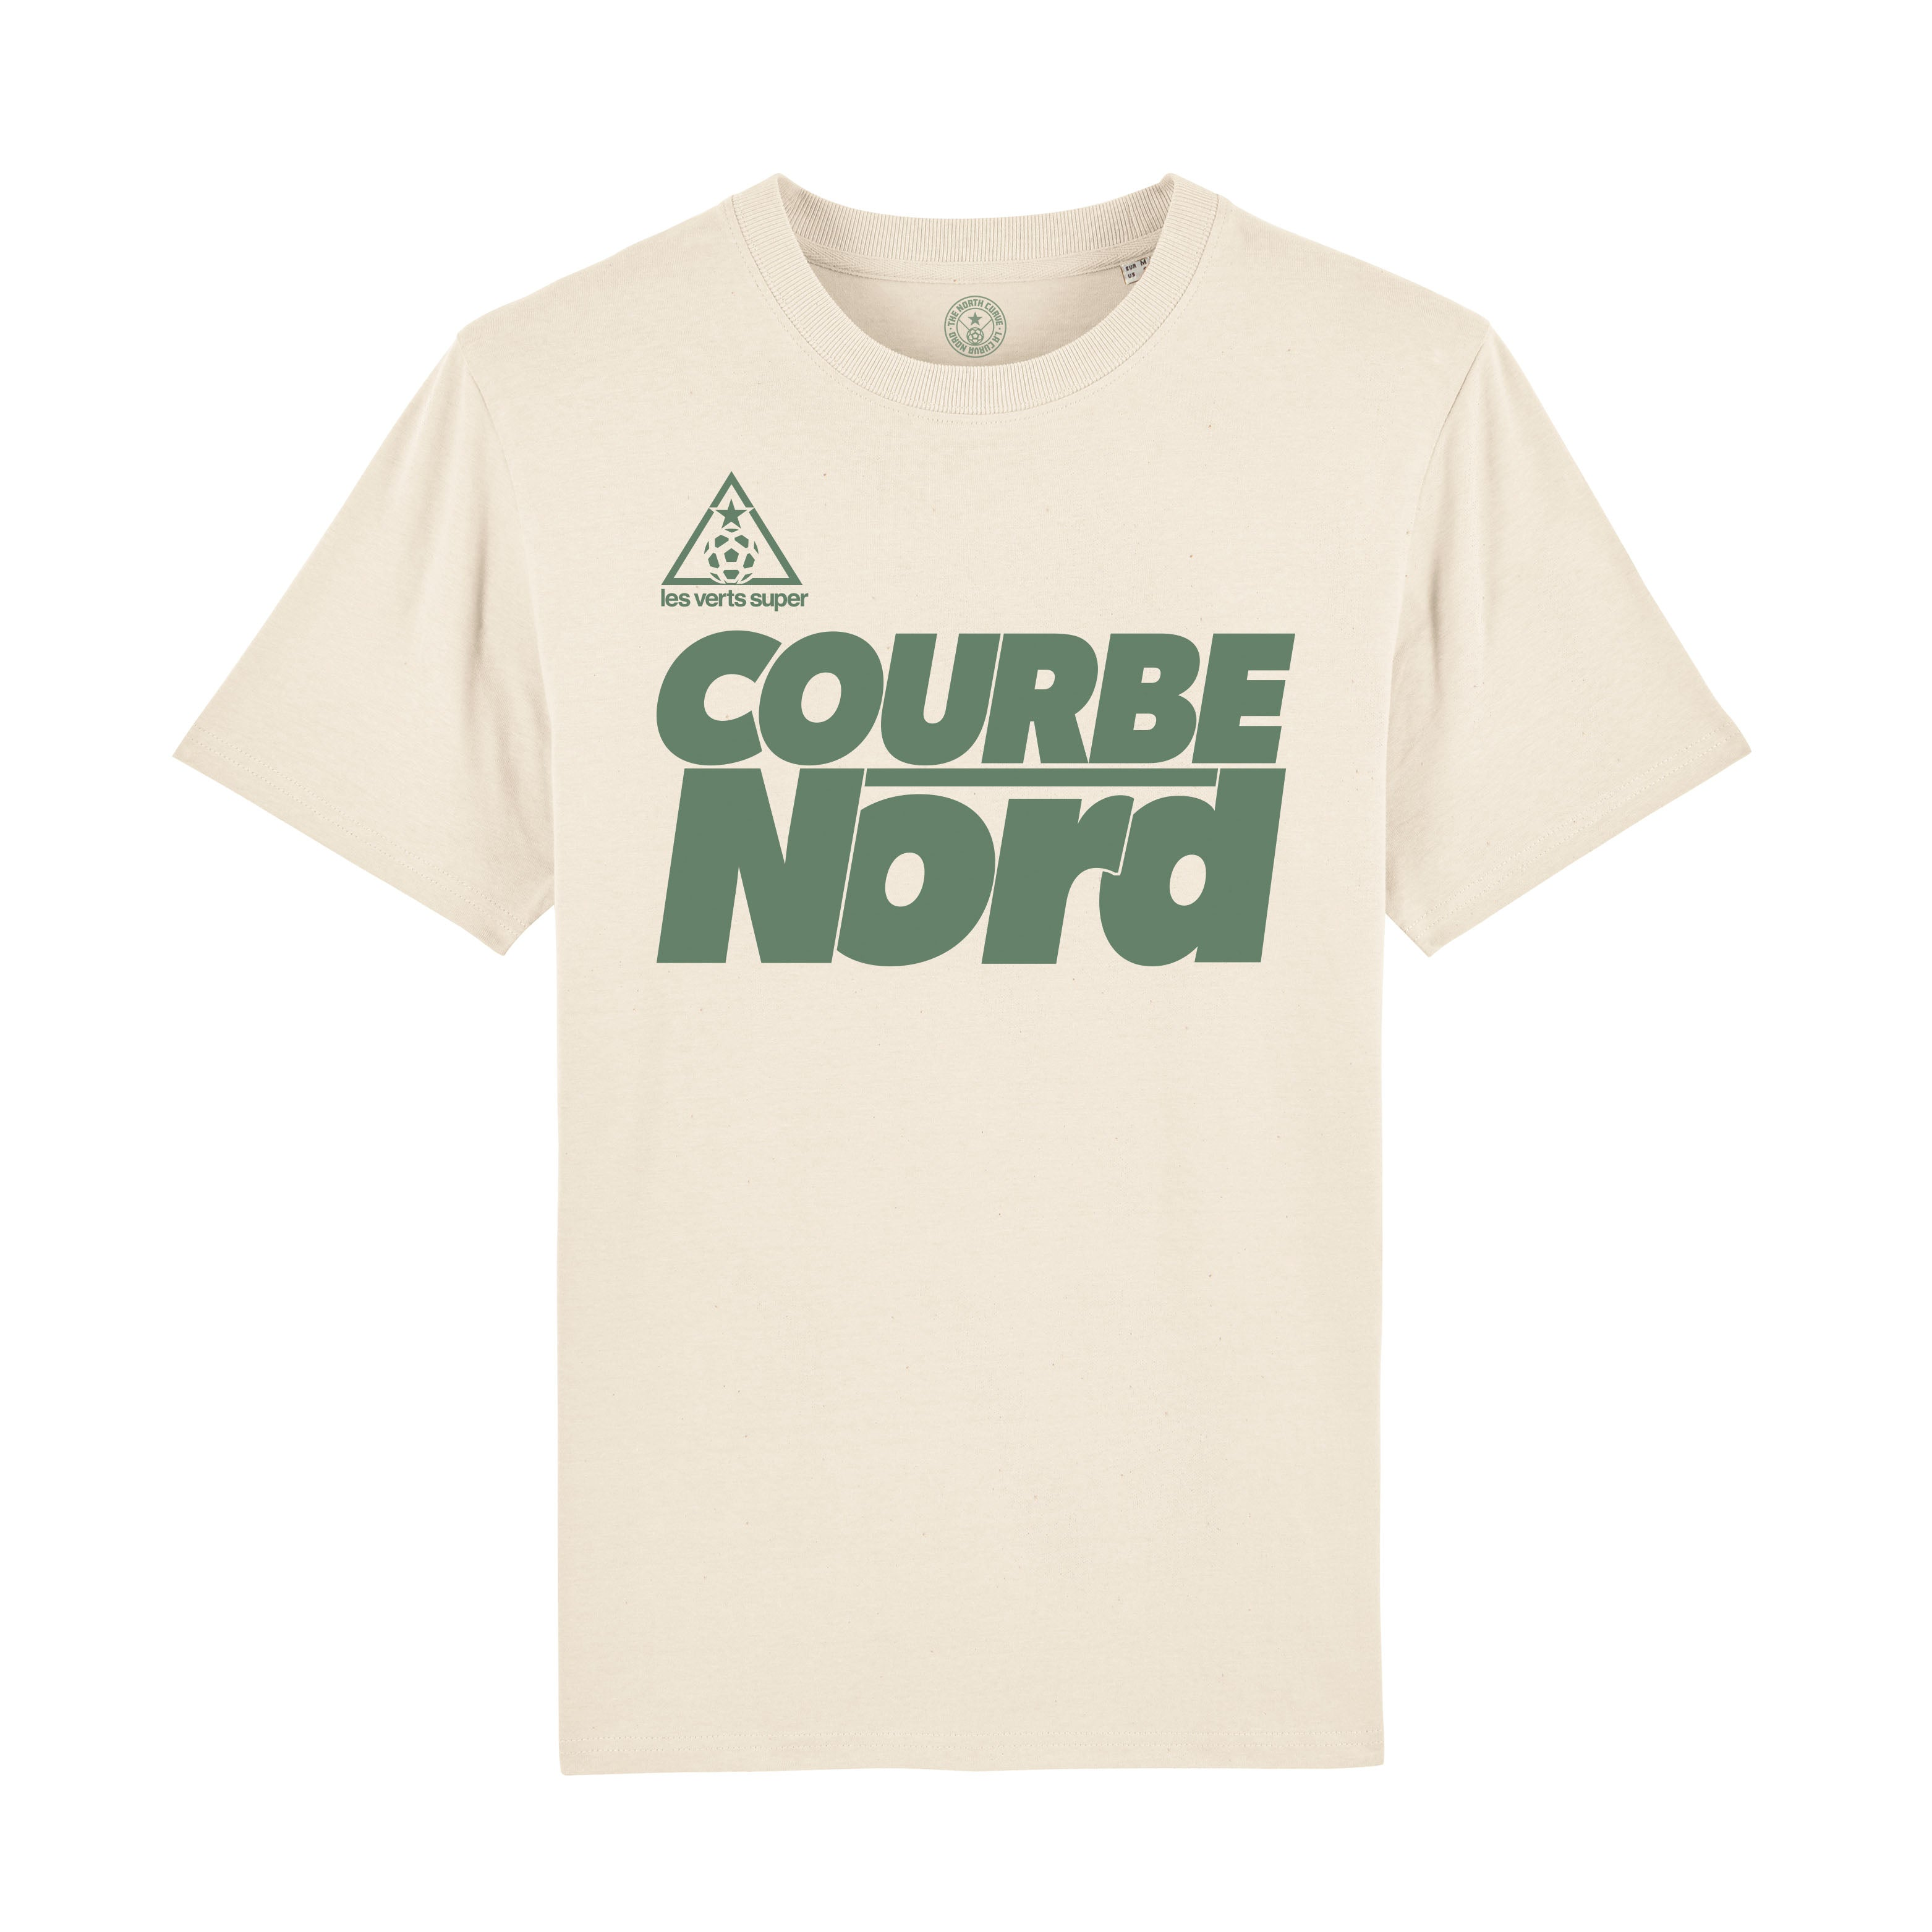 St Etienne 80 Raw t-shirt-Retro Football-The North Curve